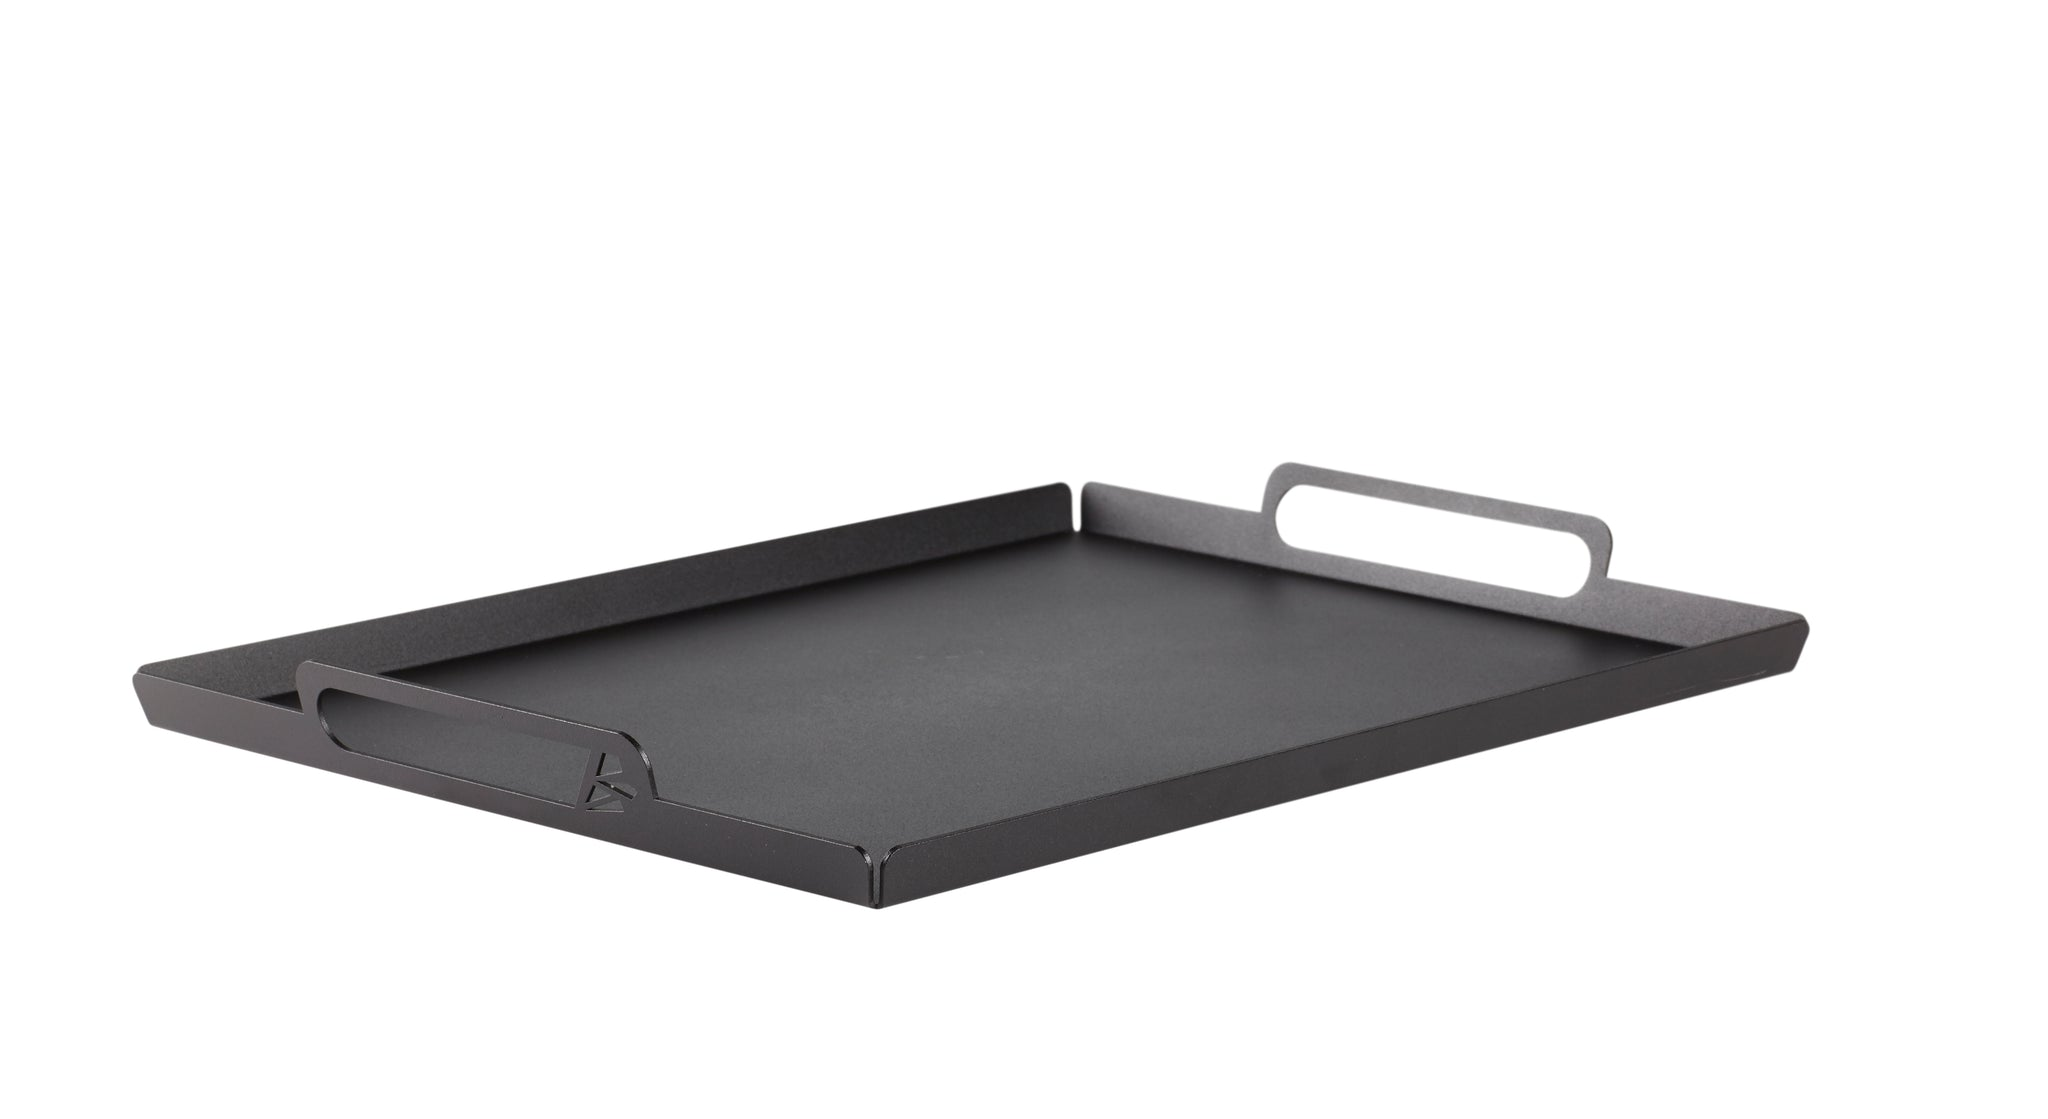 SERV - Turning tray - Black - L42 x W31 x H3,7 cm